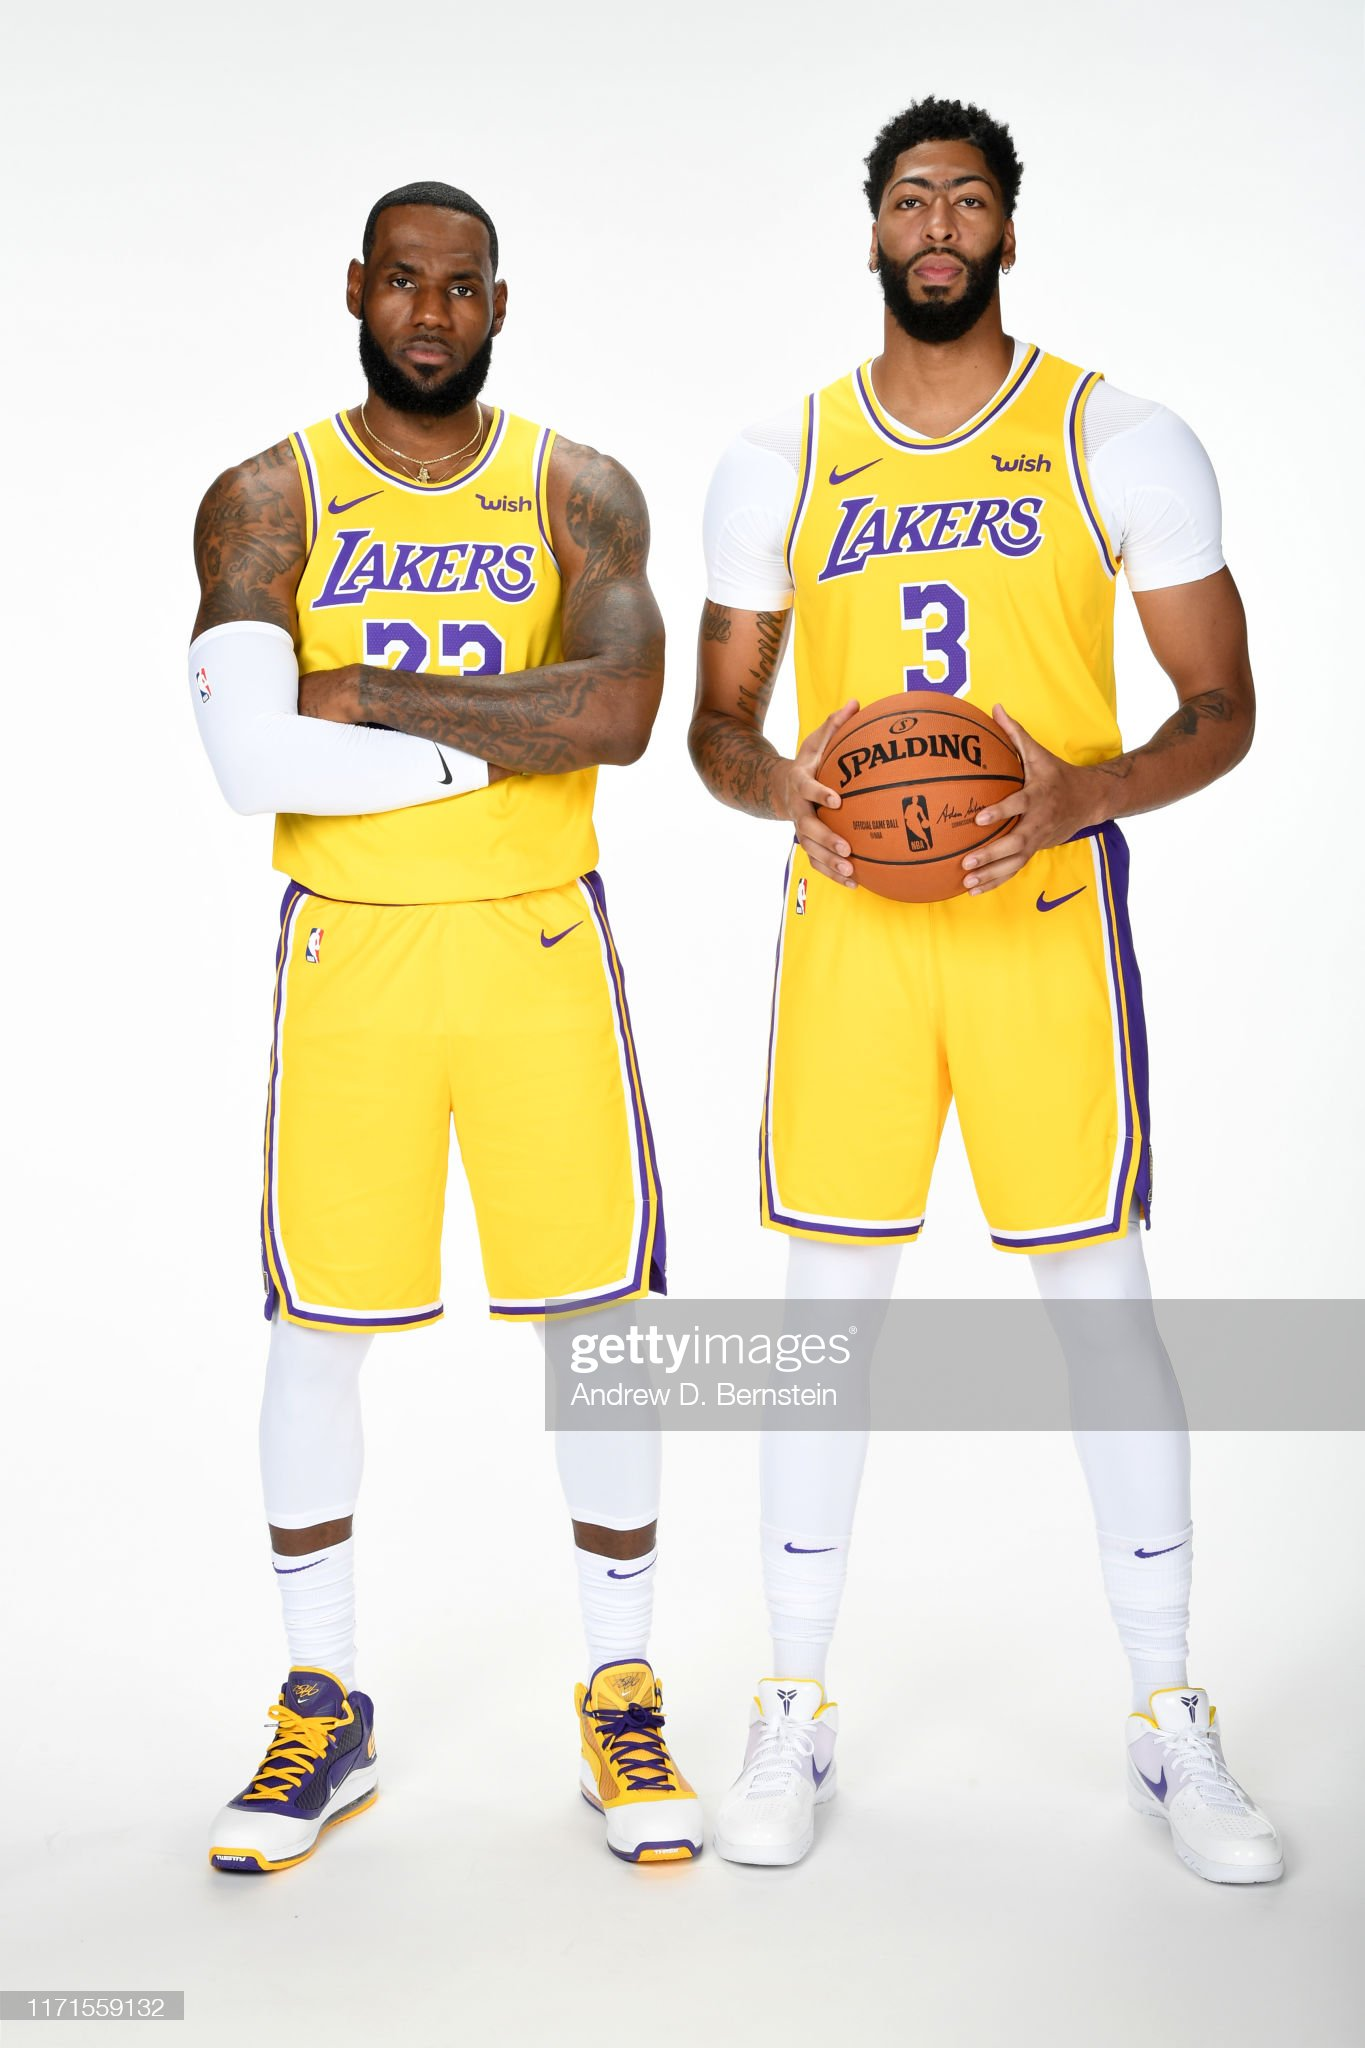 ¿Cuánto mide LeBron James? - Altura - Real height Lebron-james-and-anthony-davis-of-the-los-angeles-lakers-pose-for-a-picture-id1171559132?s=2048x2048